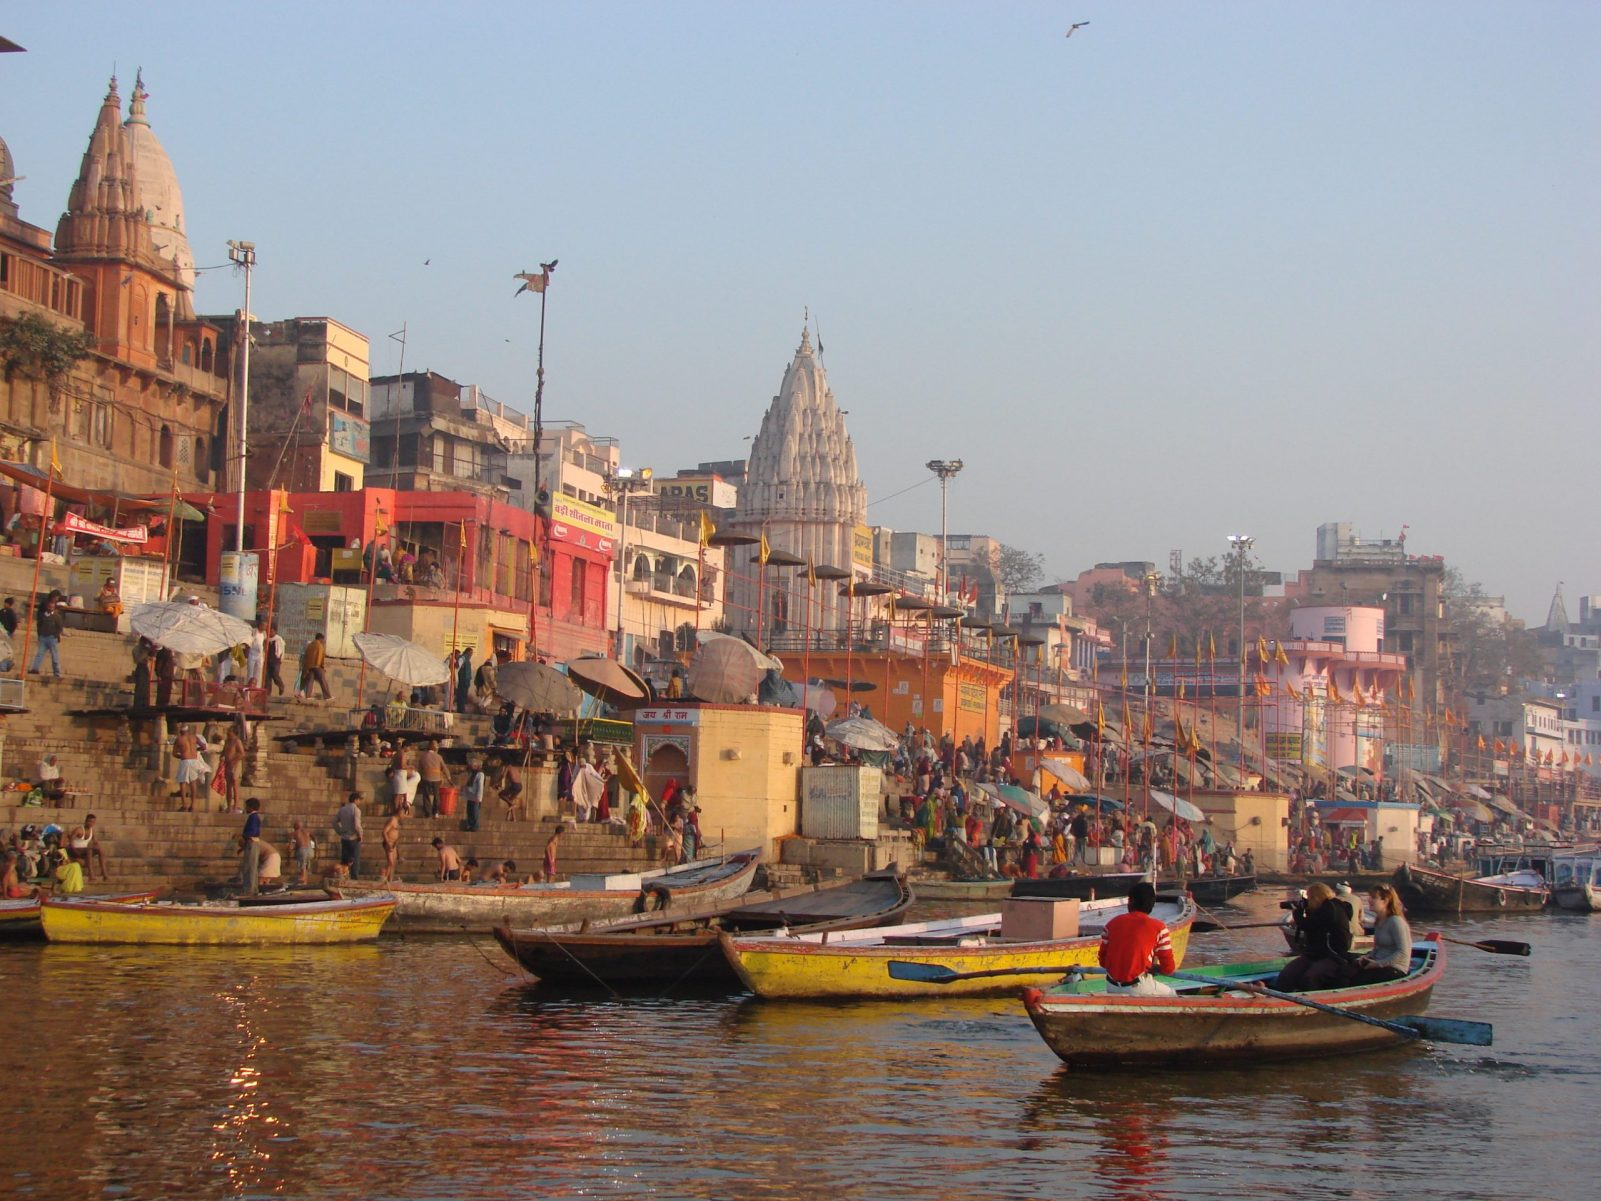 The Holy City of Varanasi